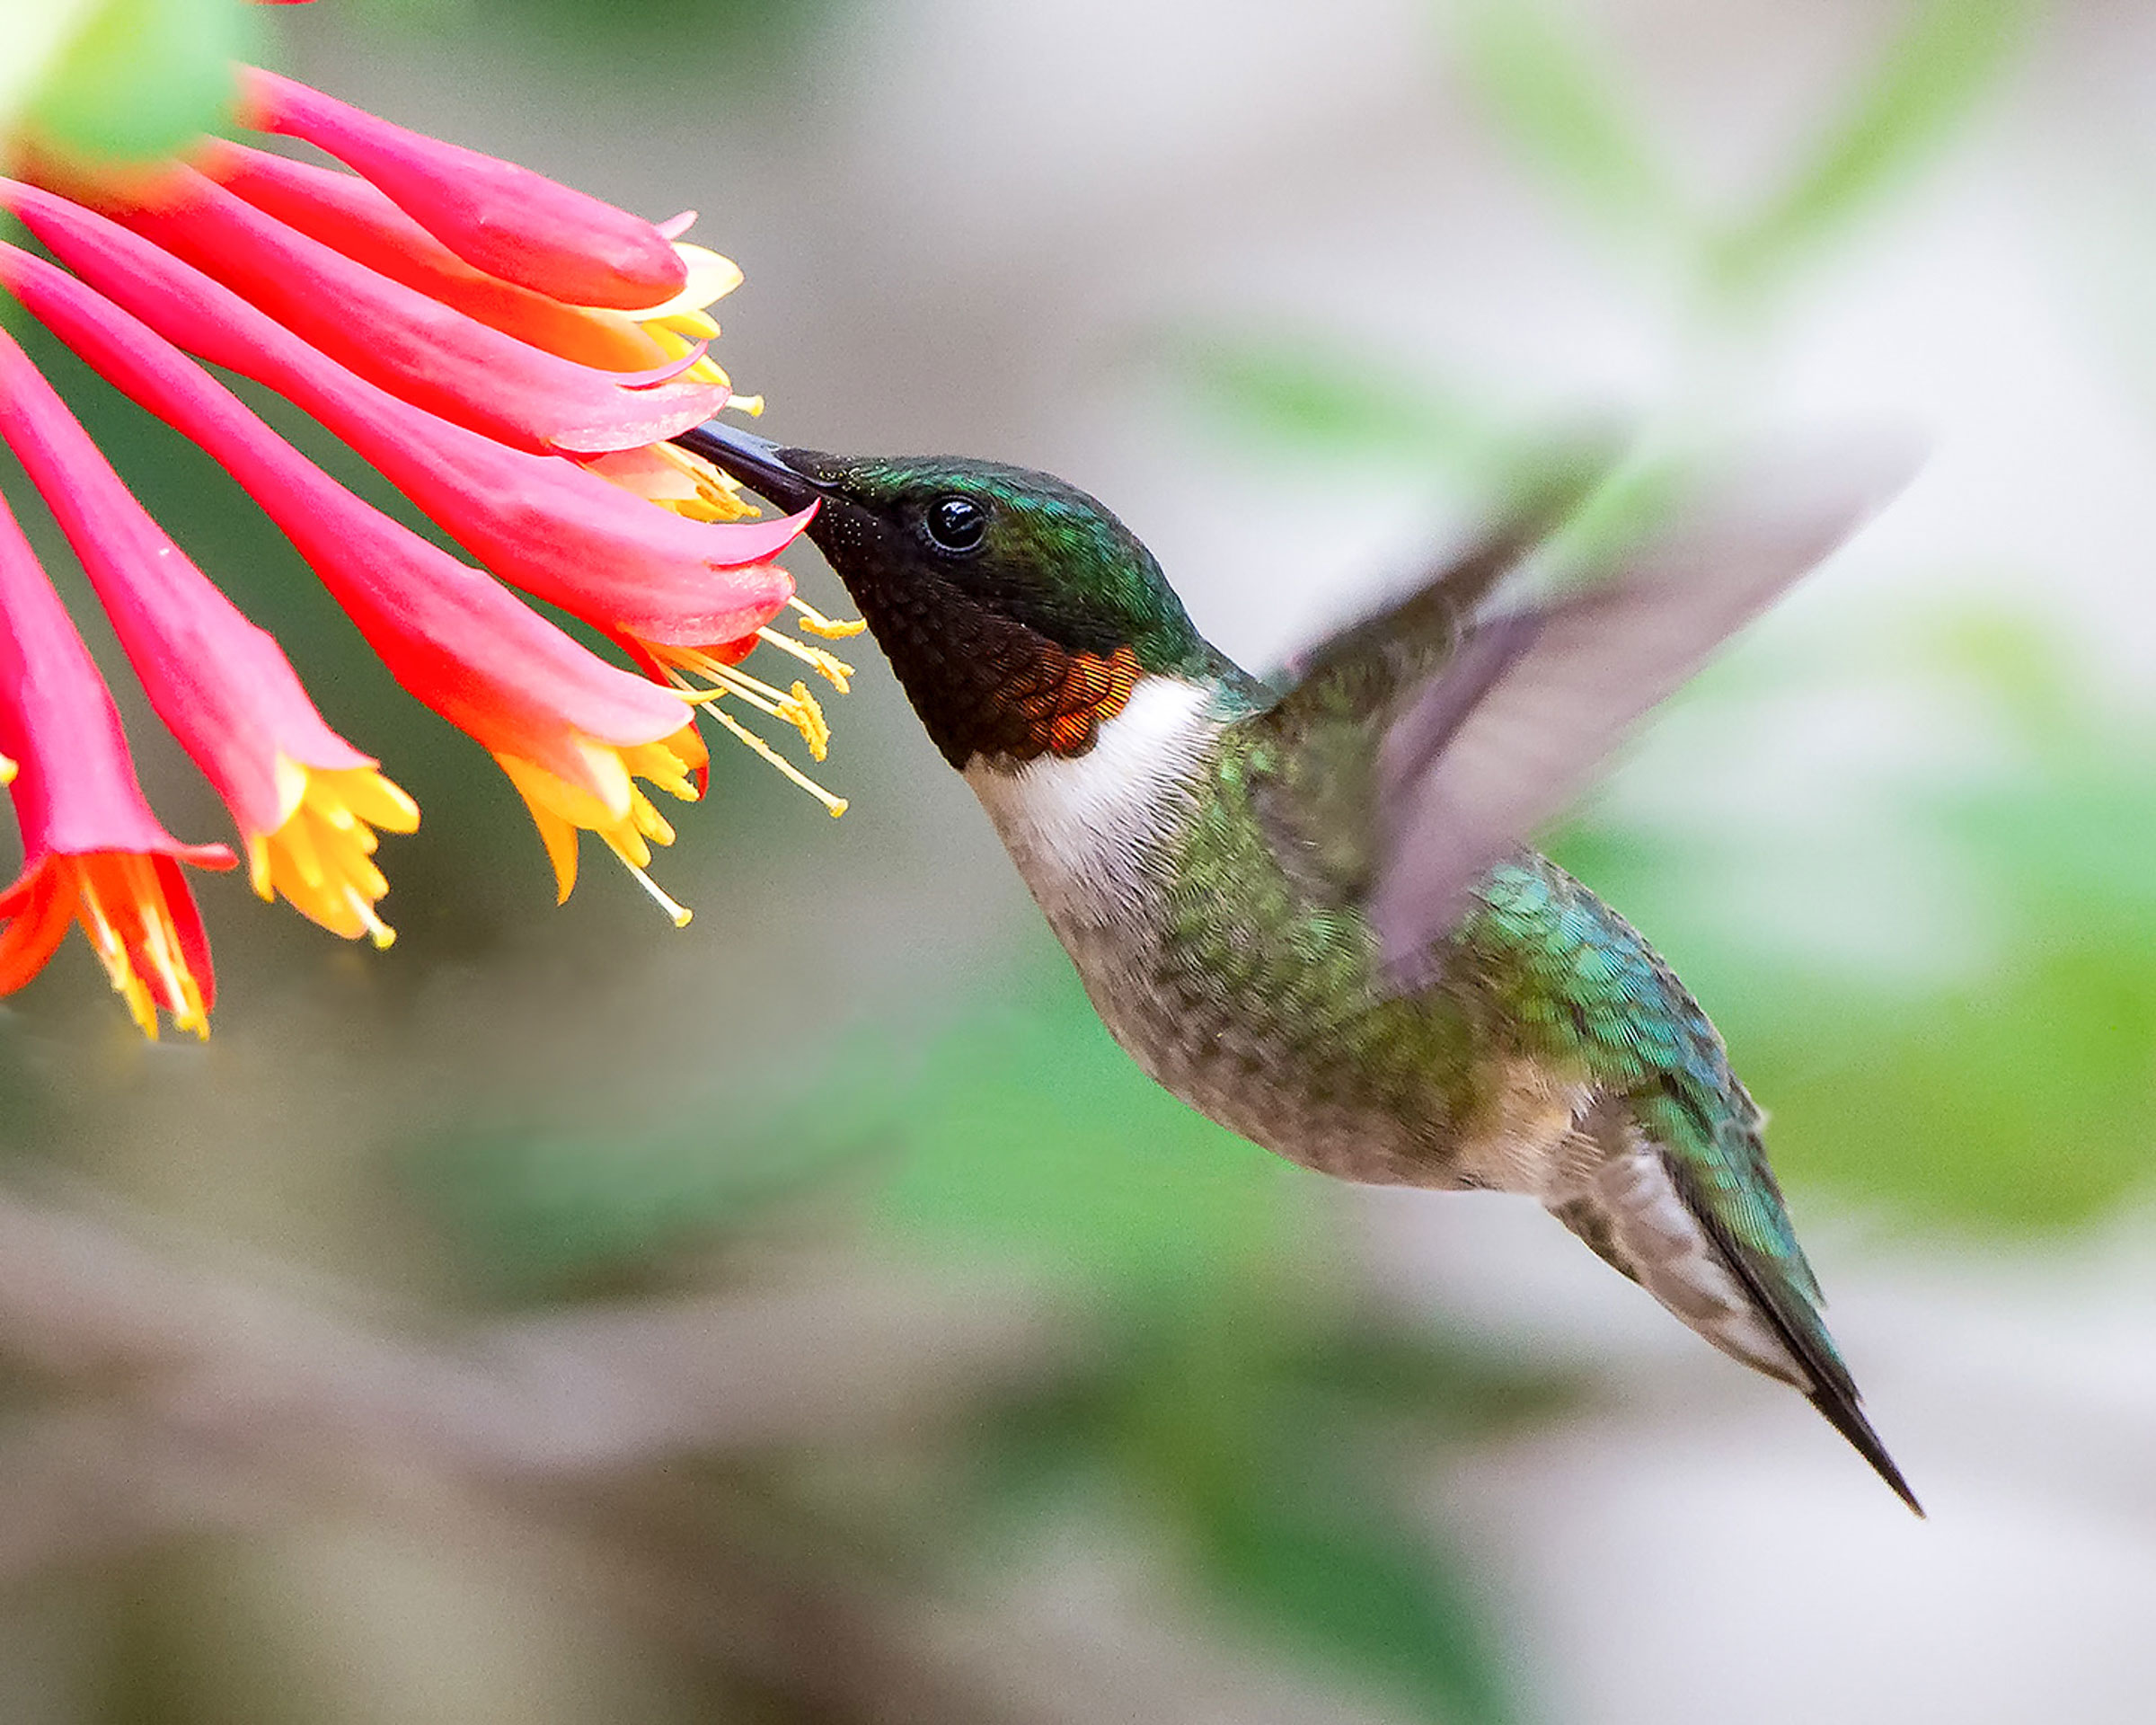 web_apa_2015_davidshipper_ruby-throated_hummingbird_kk.jpg